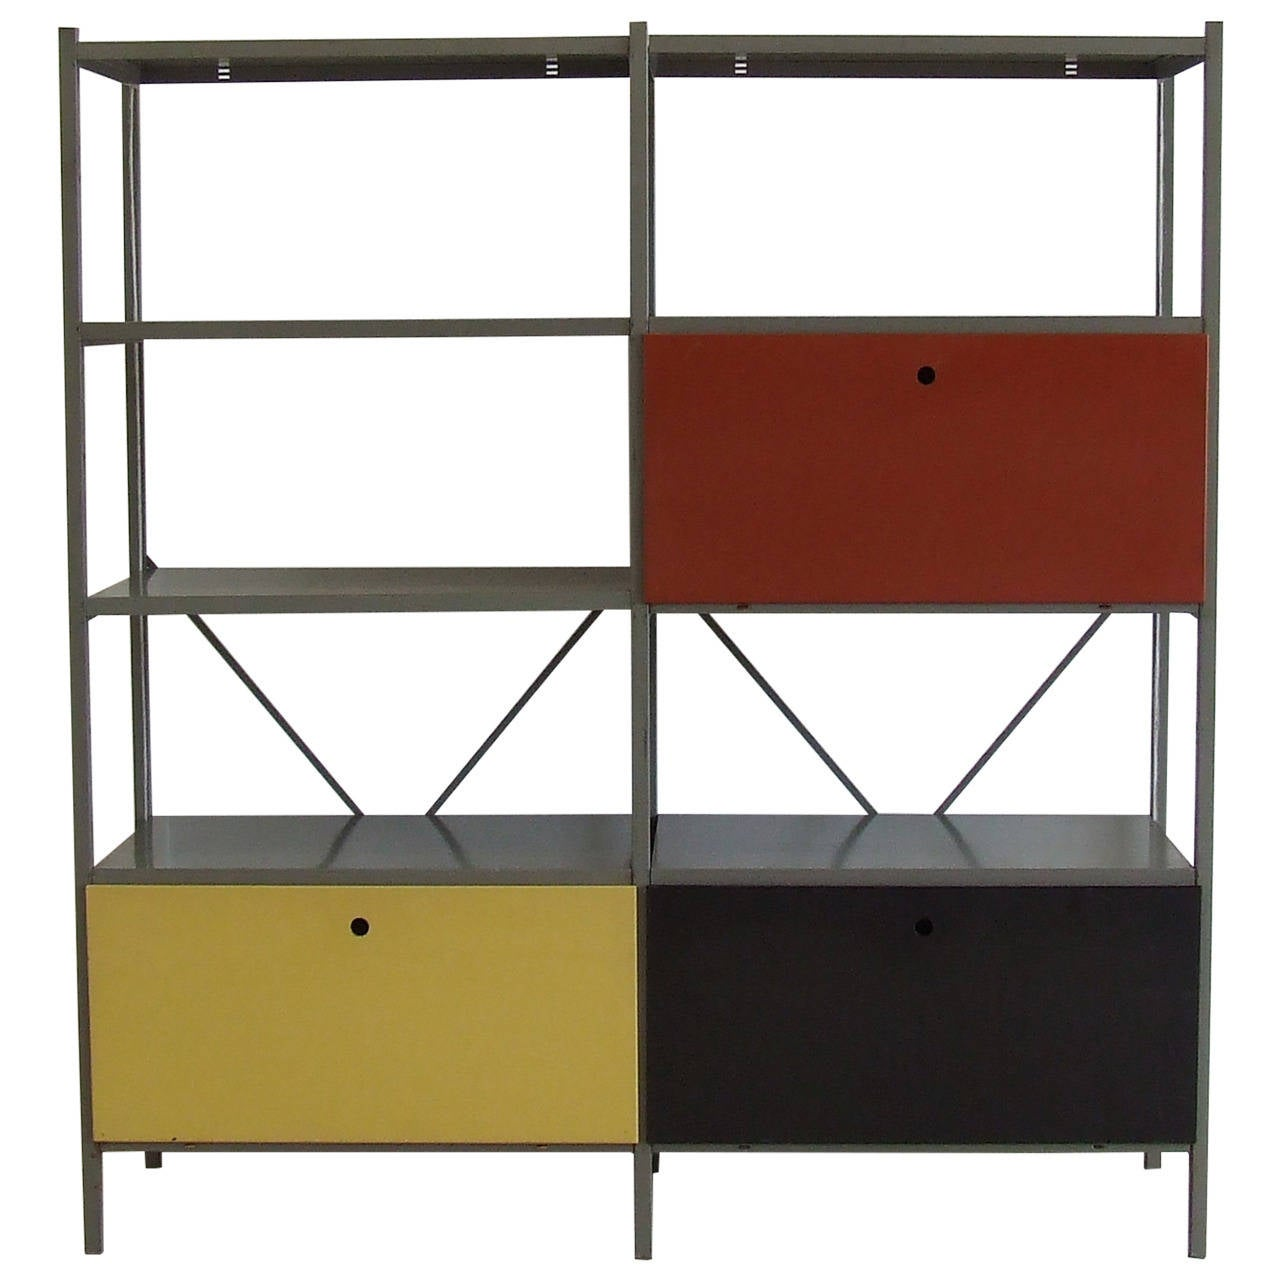 Modular Industrial Wall System By Rietveld For Gispen